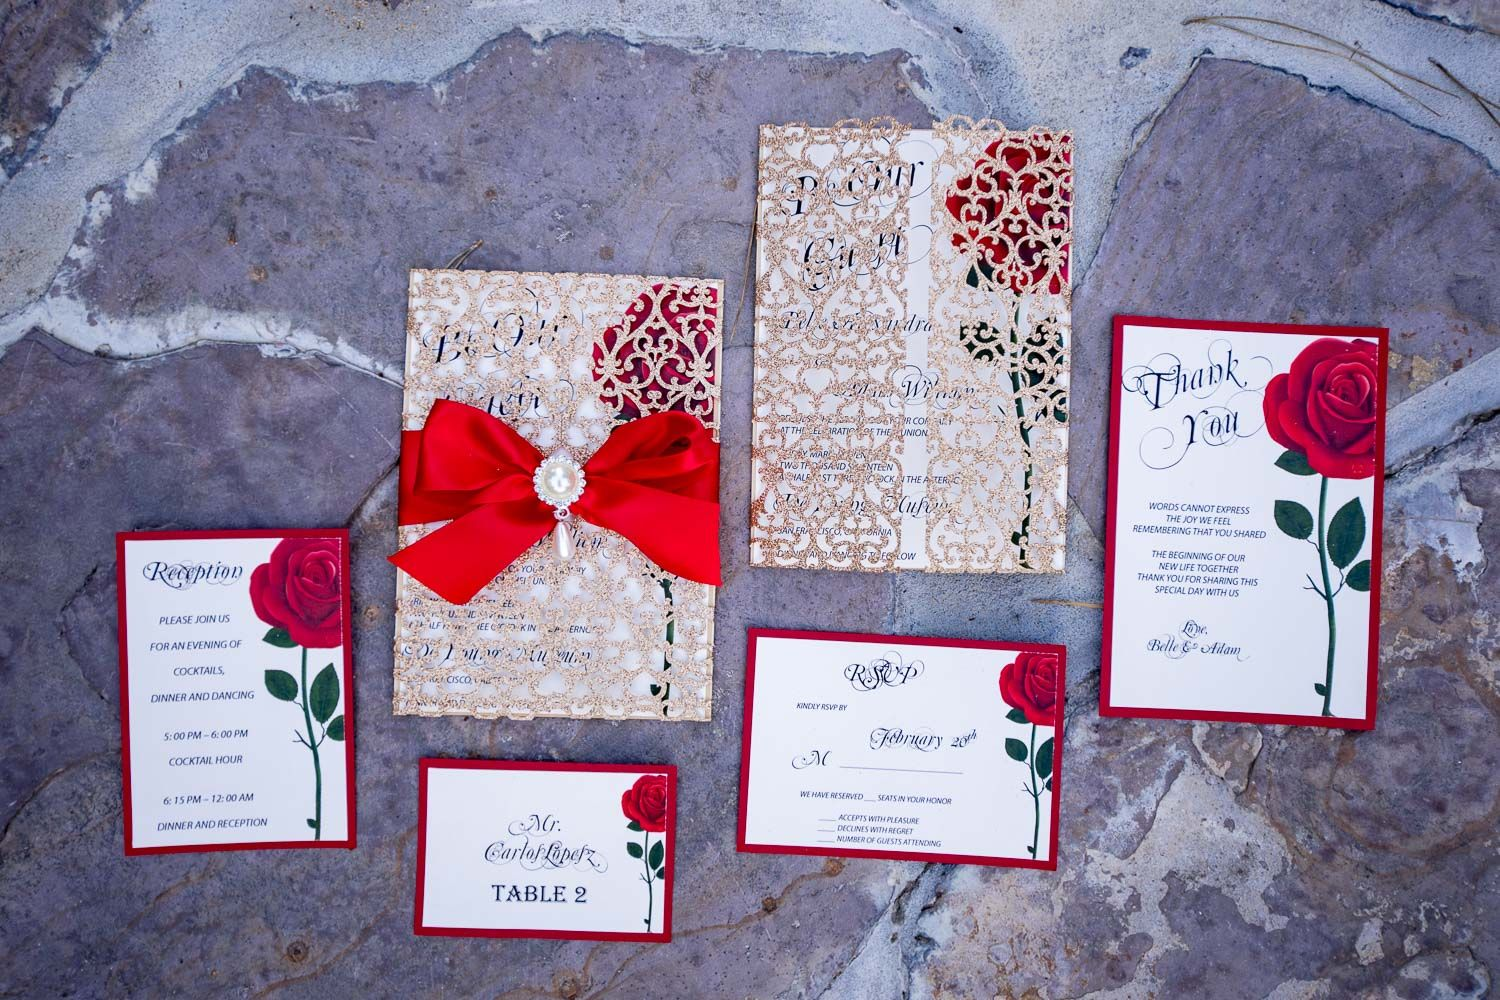 Be Our Guest Invitations Beauty and the beast wedding | Disney ...